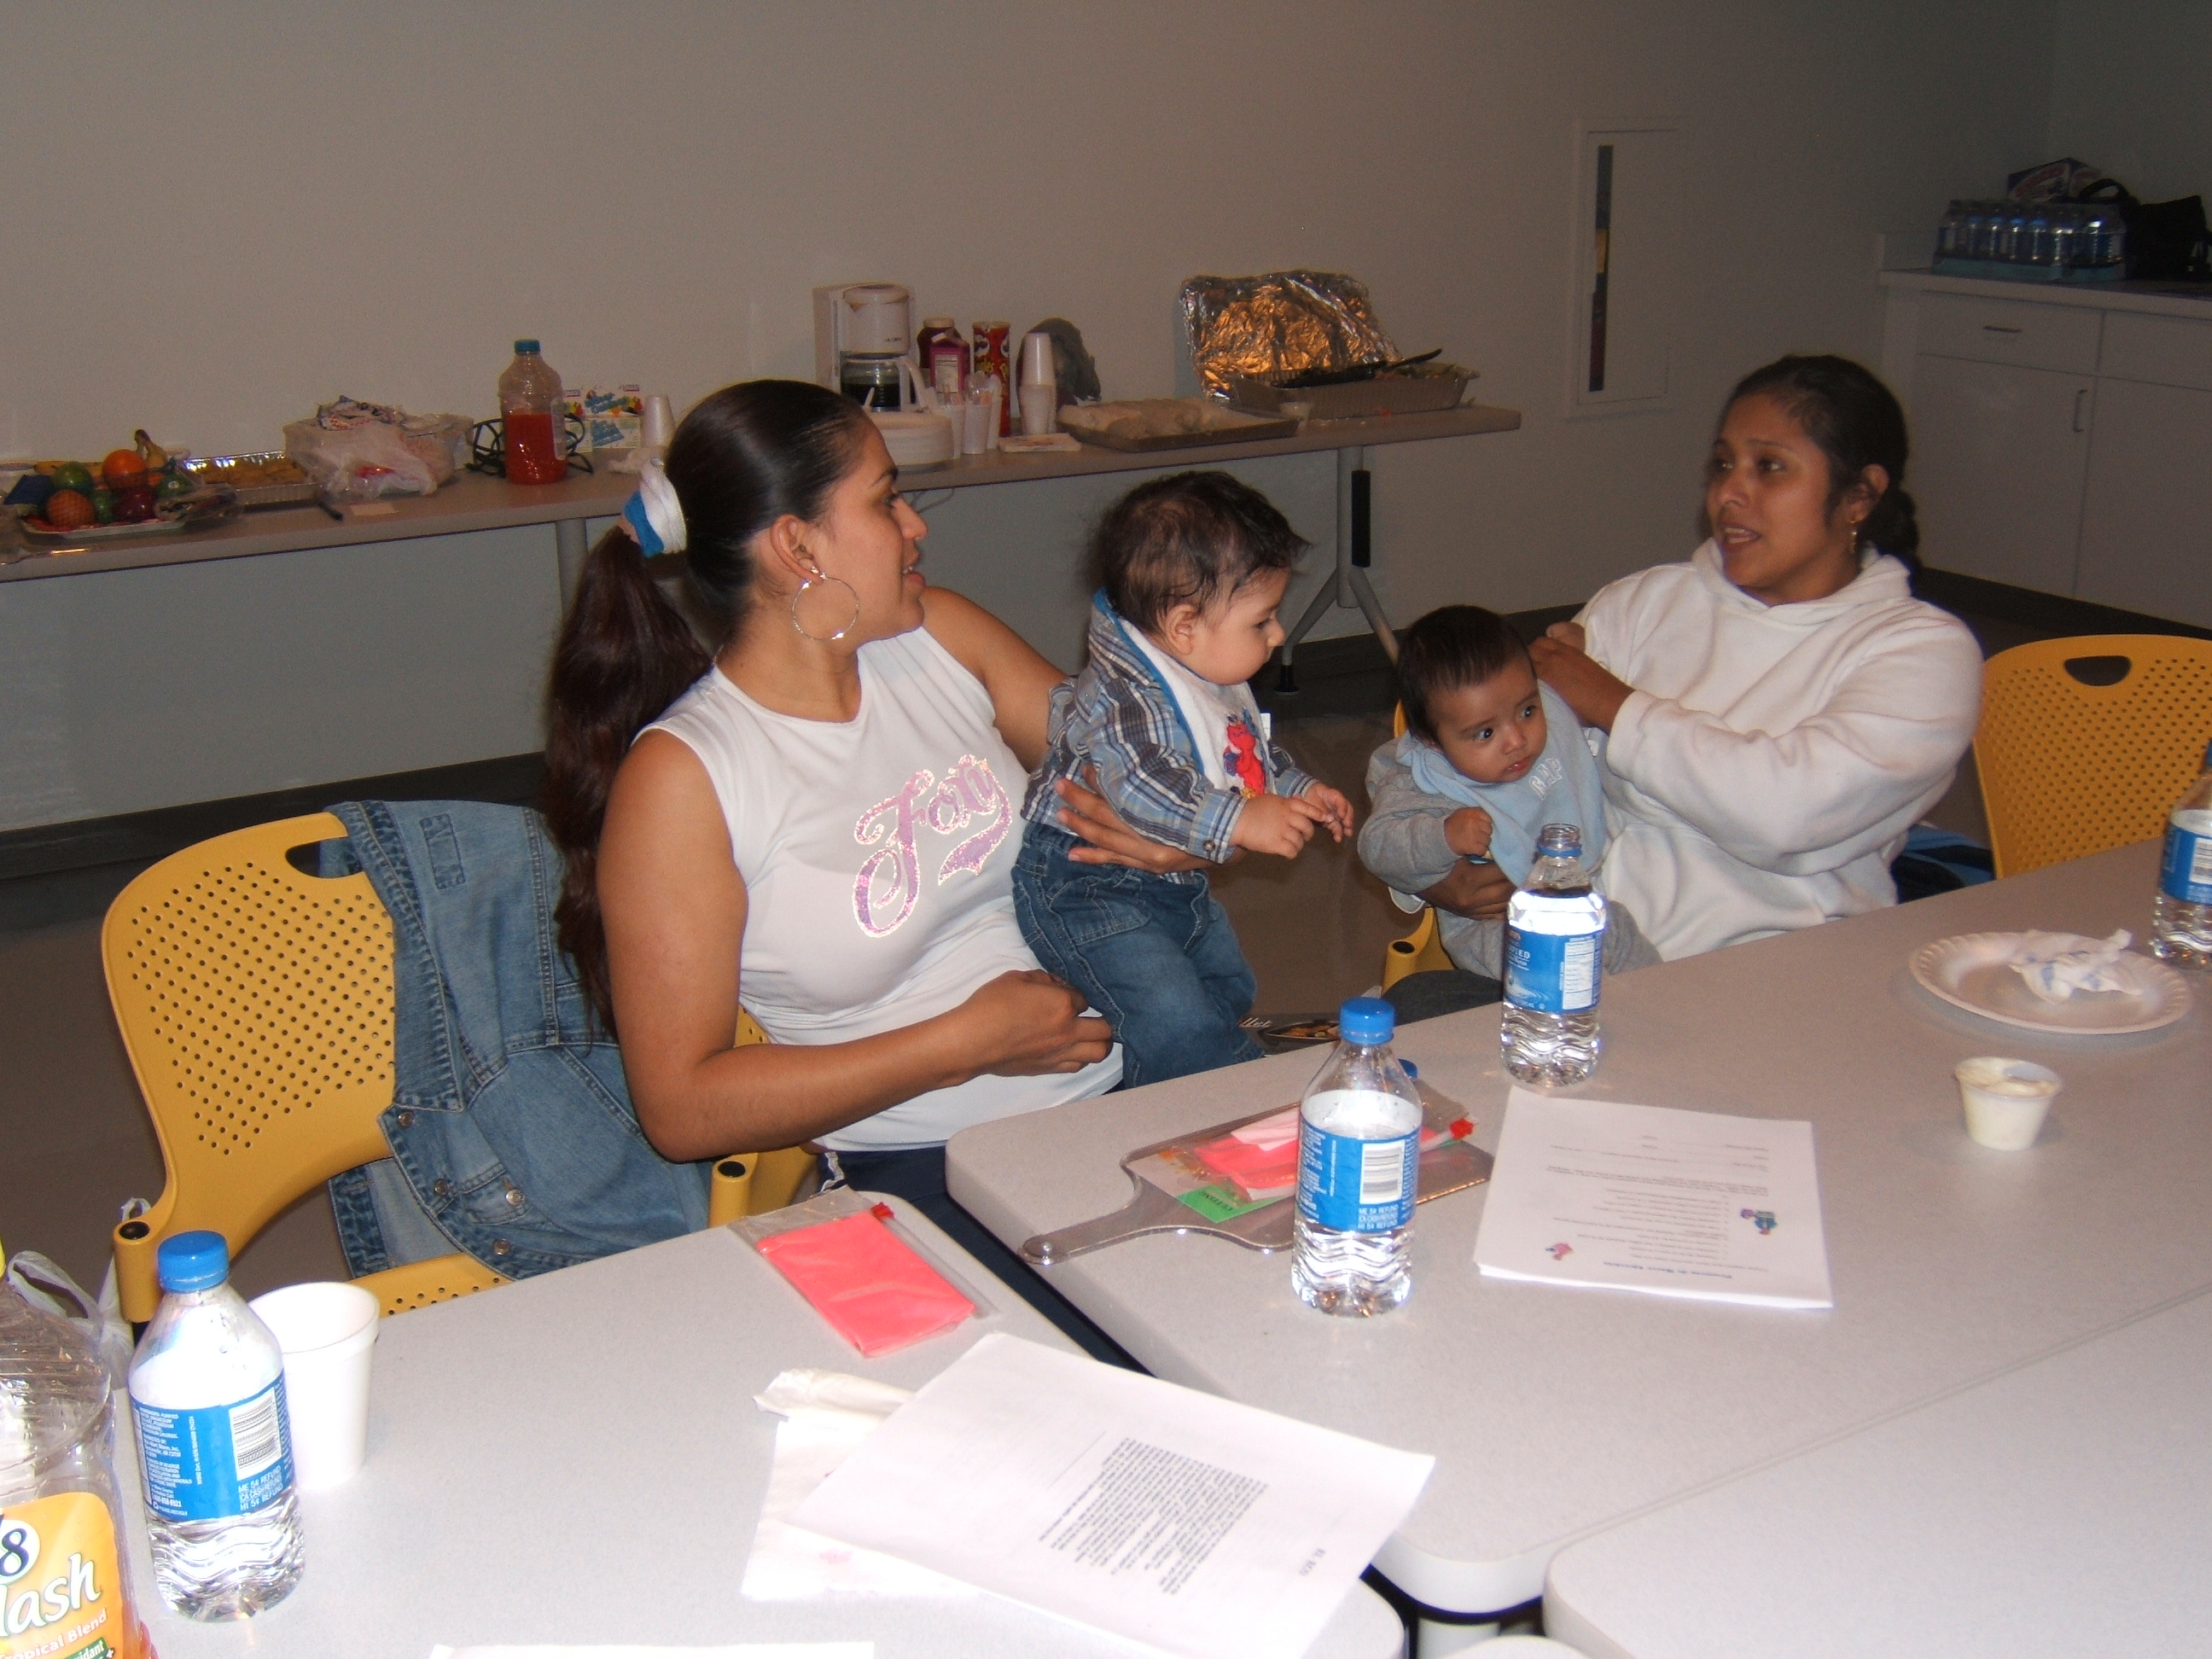 The Healthy MOMs program provided women with opportunities to talk and support each other during and after pregnancy. Image credit: Edith Kieffer